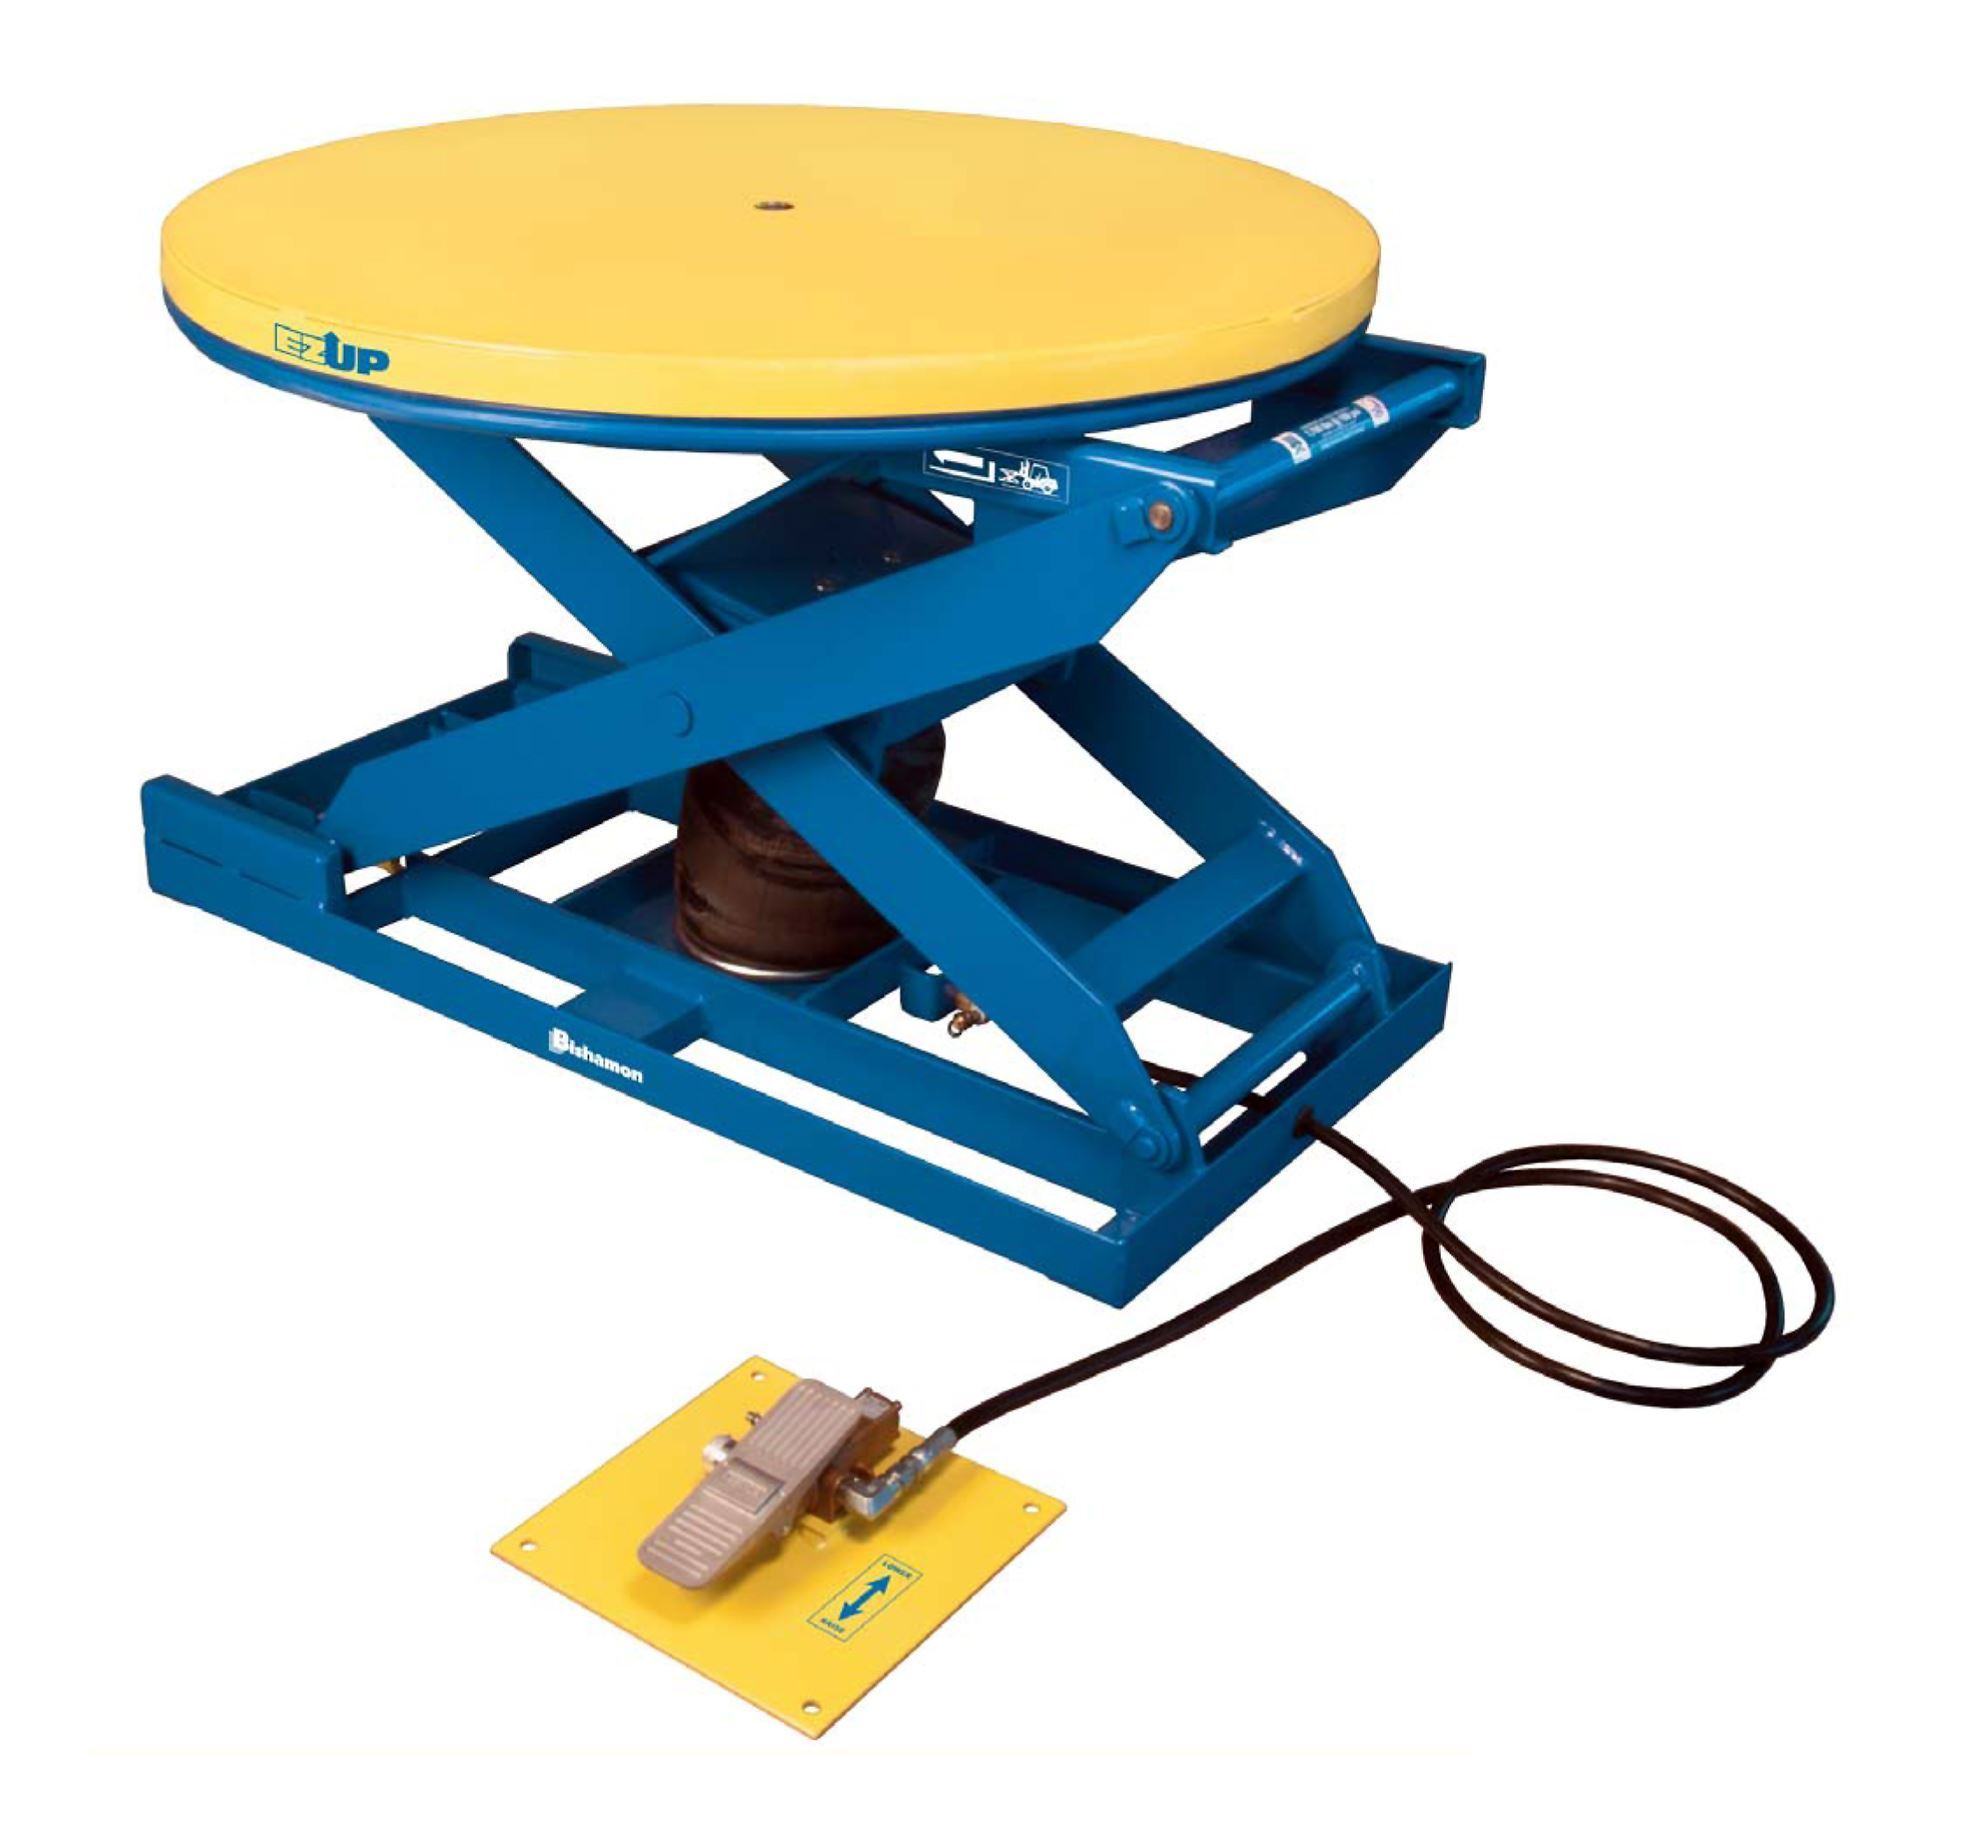 Bishamon EZ Up EZU-15-R Pneumatic Lift Table with Round Rotating Platform and Foot Operated Control